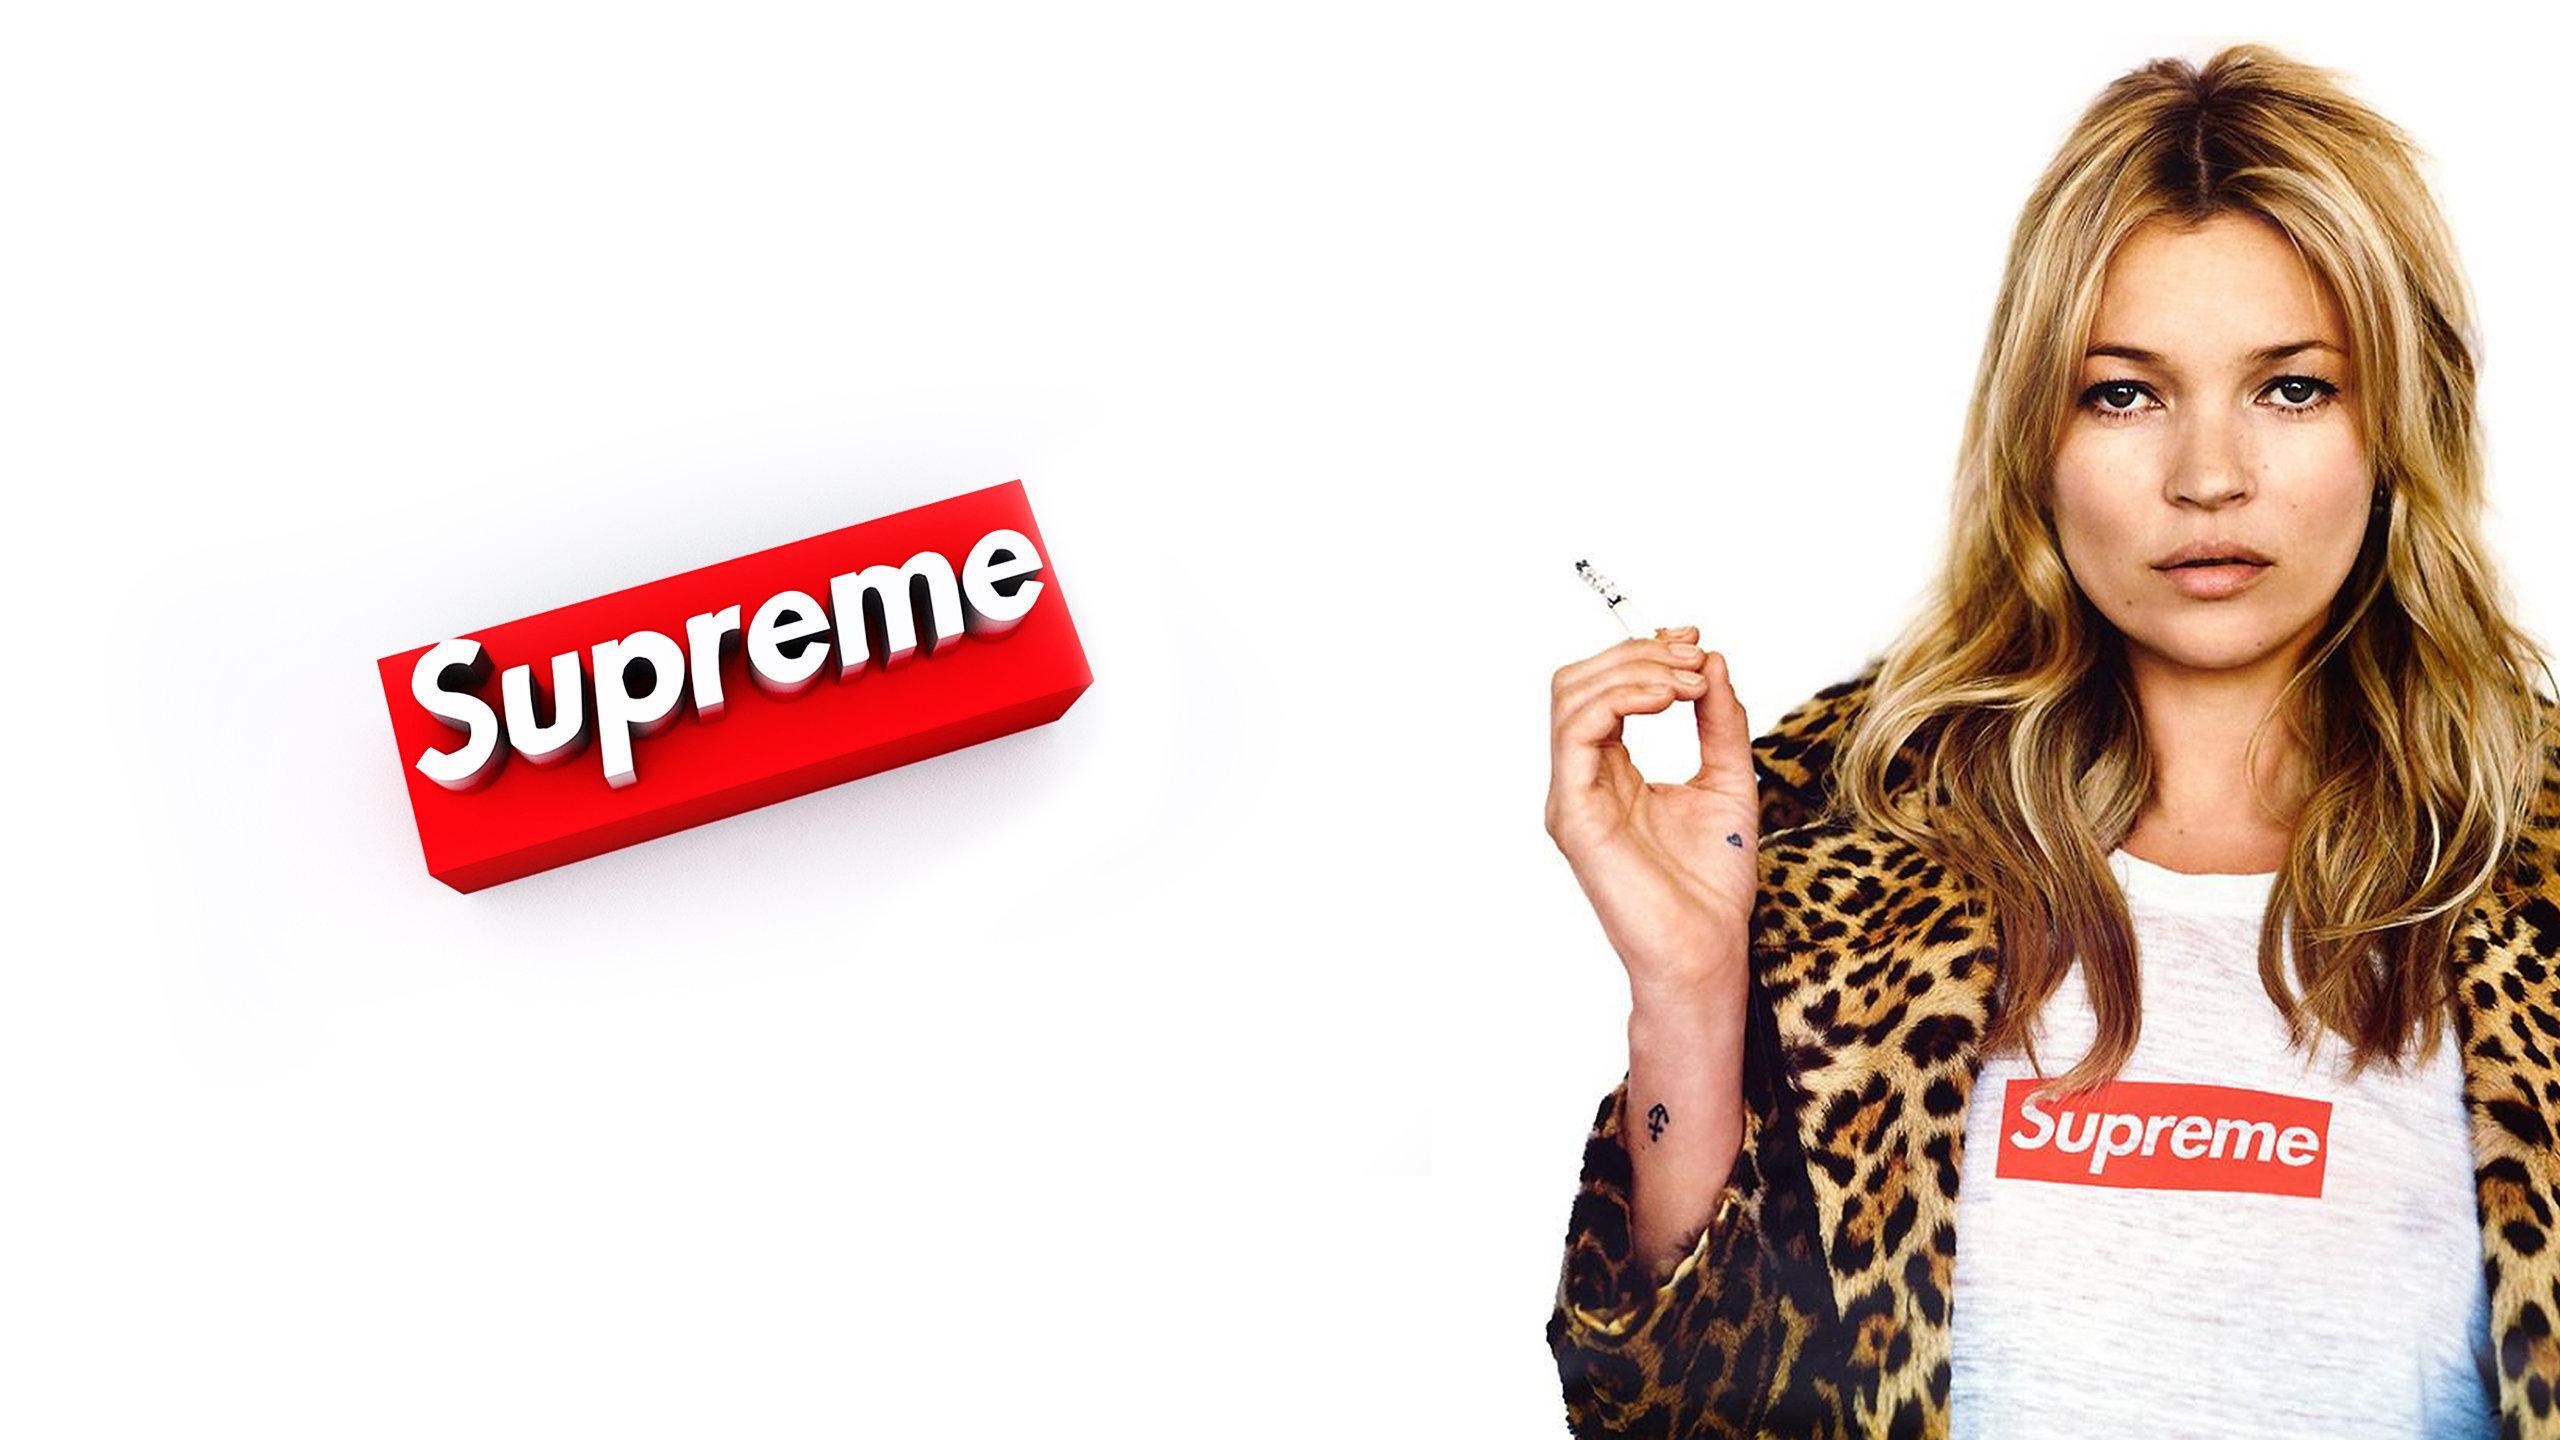 Wonderful Wallpaper High Quality Supreme - kate-moss-supreme  Picture_629793.jpg